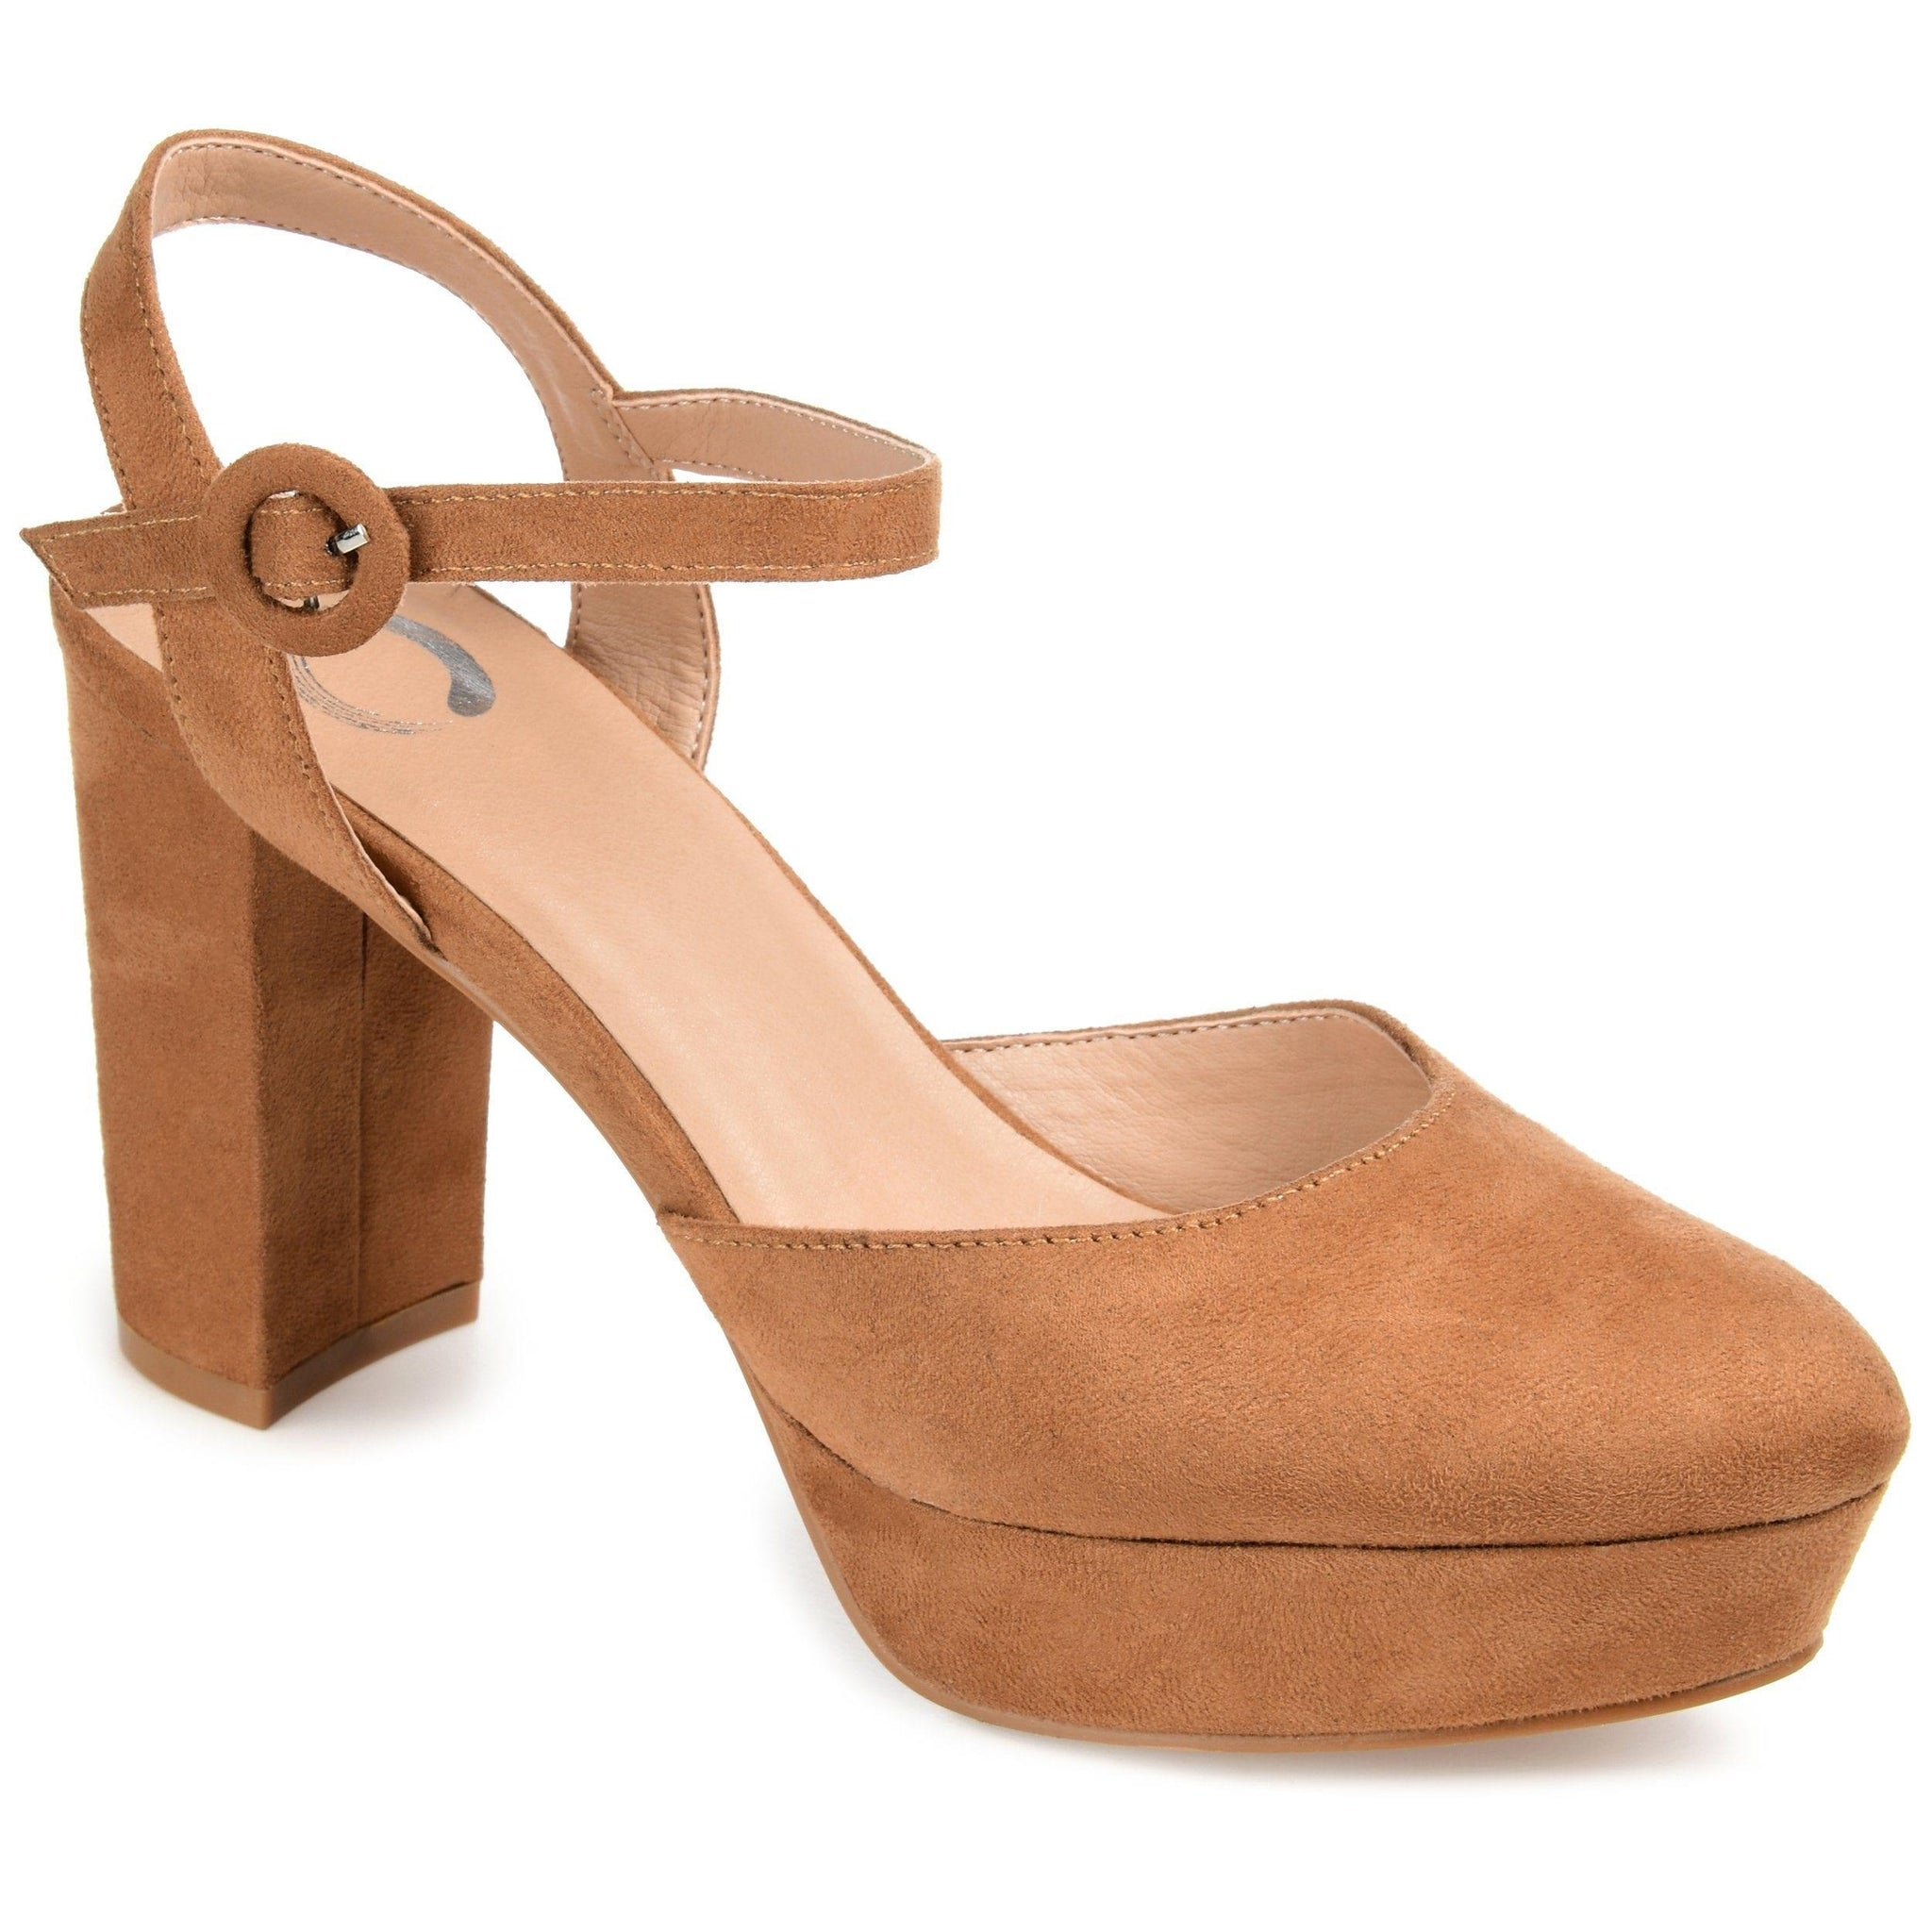 ROSLYNN SHOES Journee Collection Tan 10